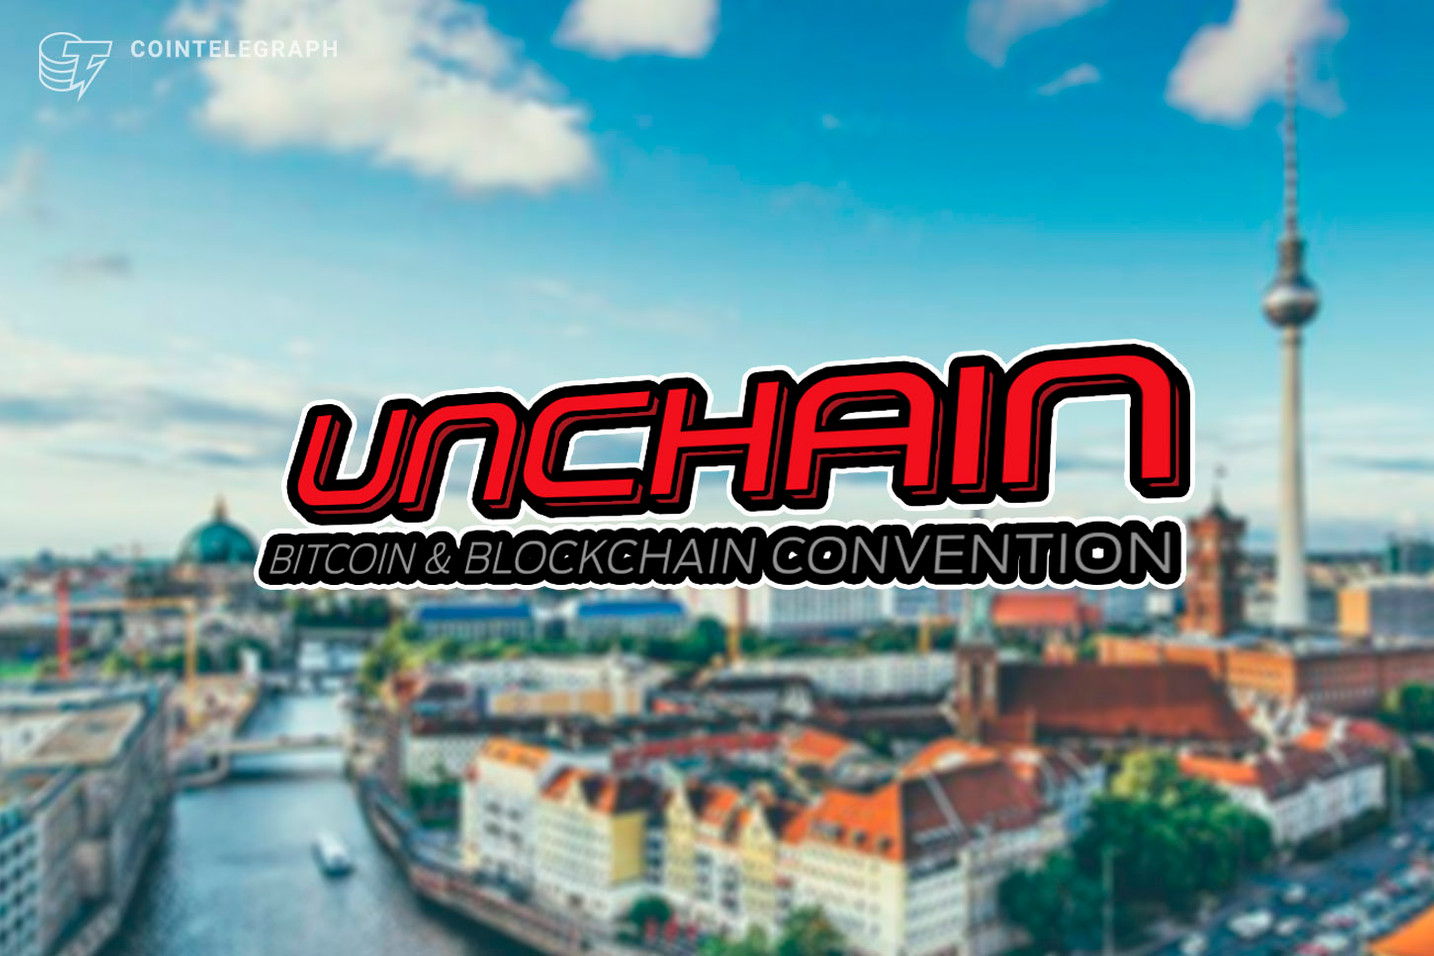 The Crypto-Winter is Over? What was Said at this Year's UNCHAIN Convention in Berlin